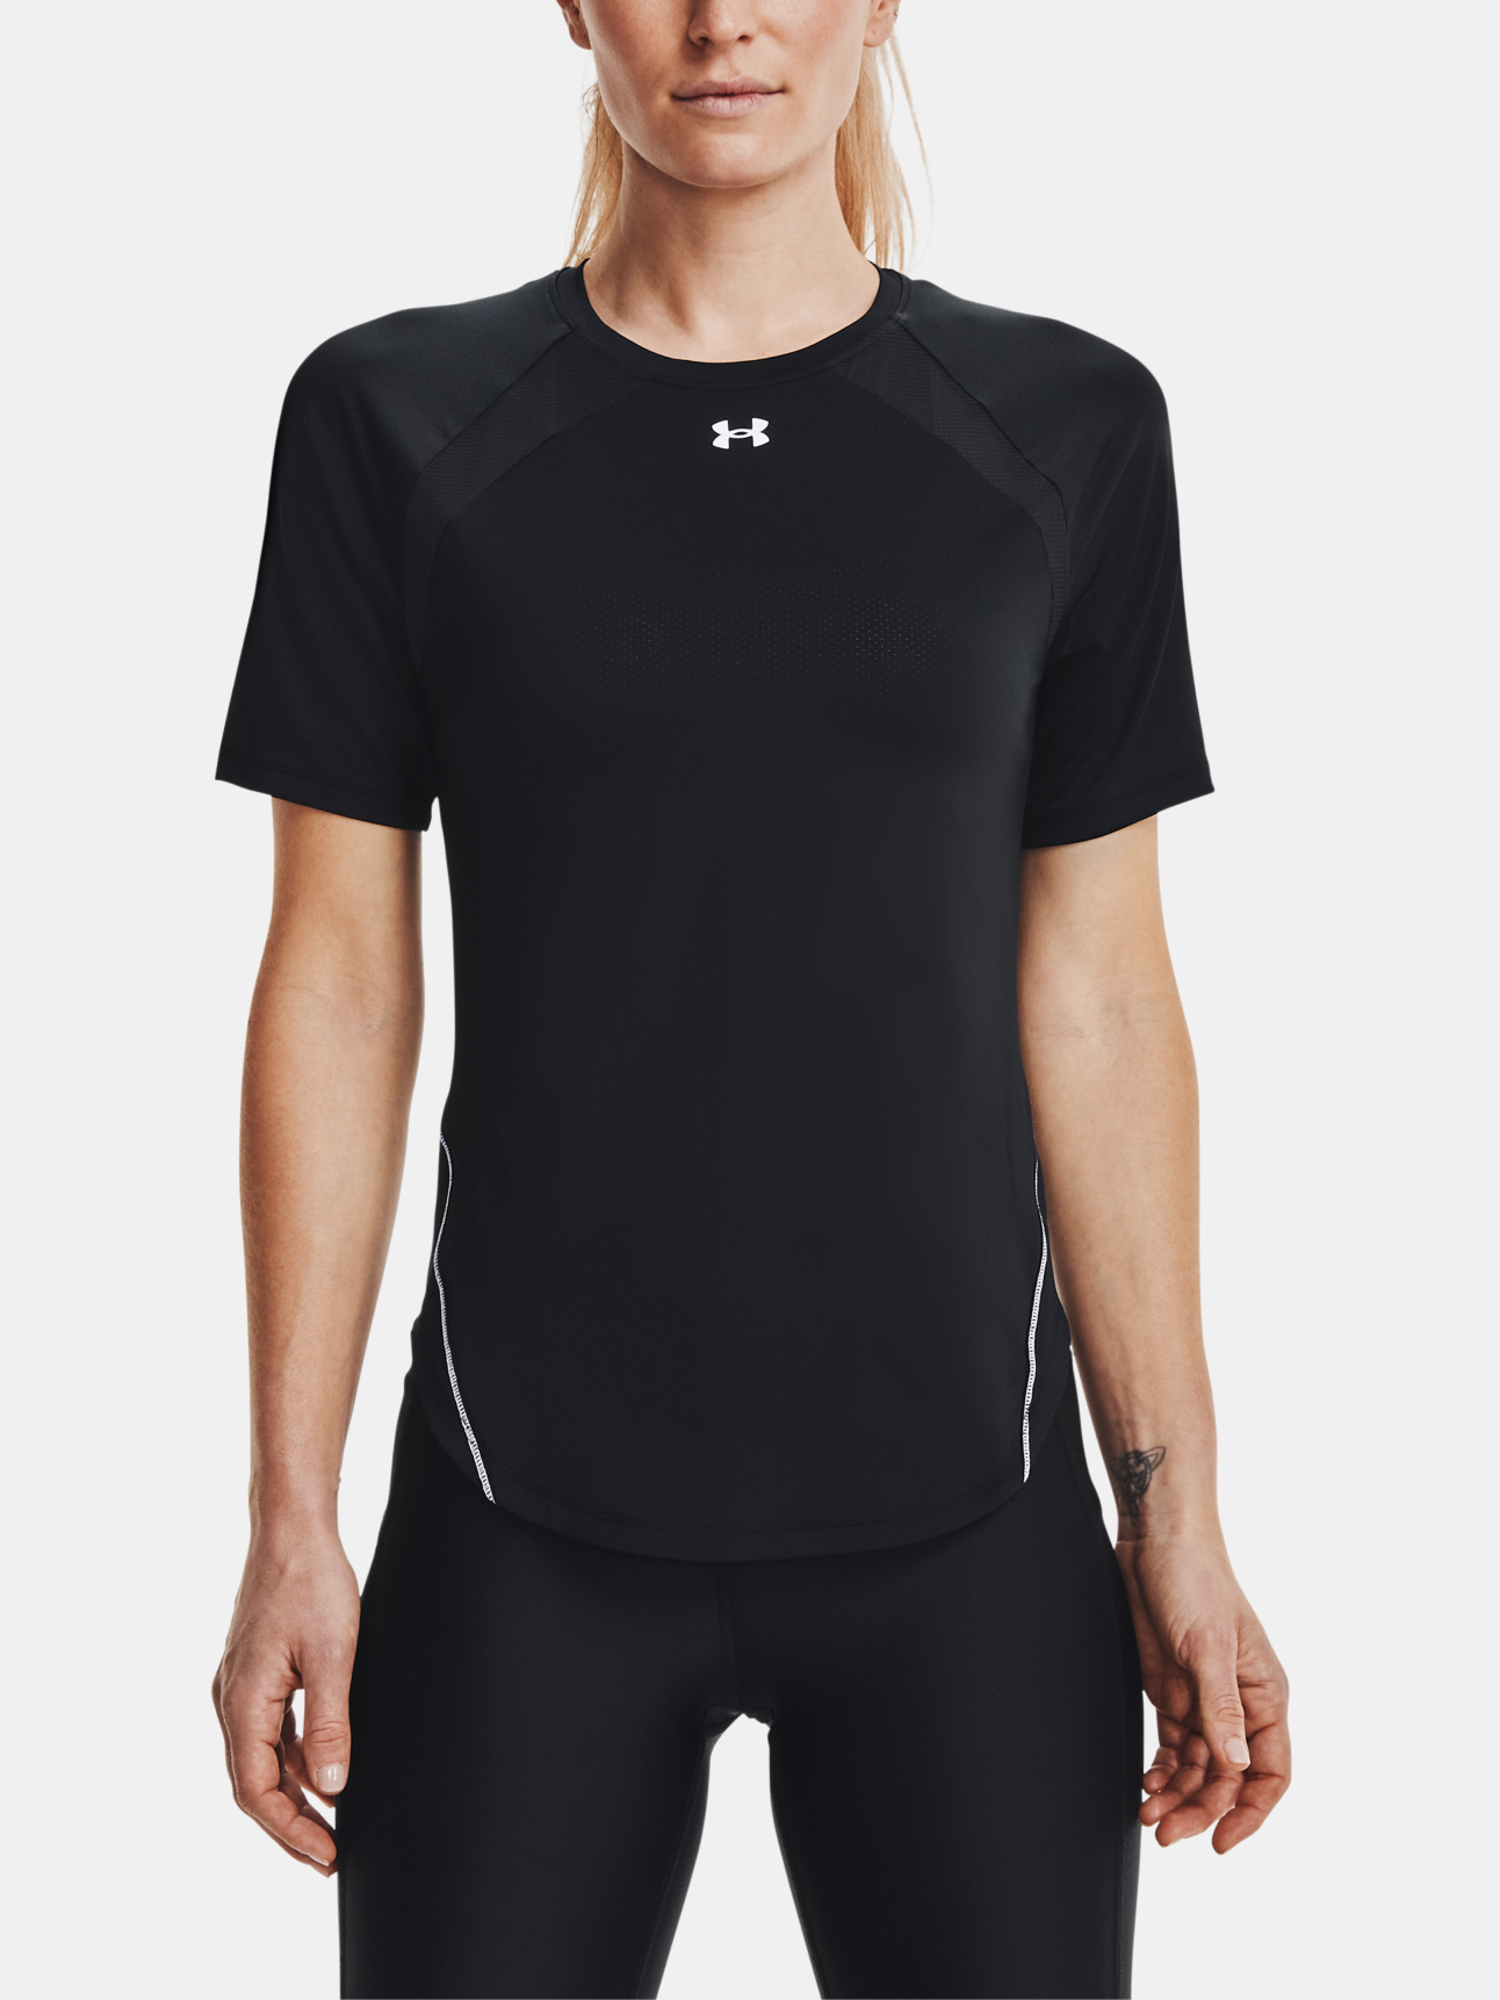 Under Armour de dama tricou Coolswitch SS-BLK